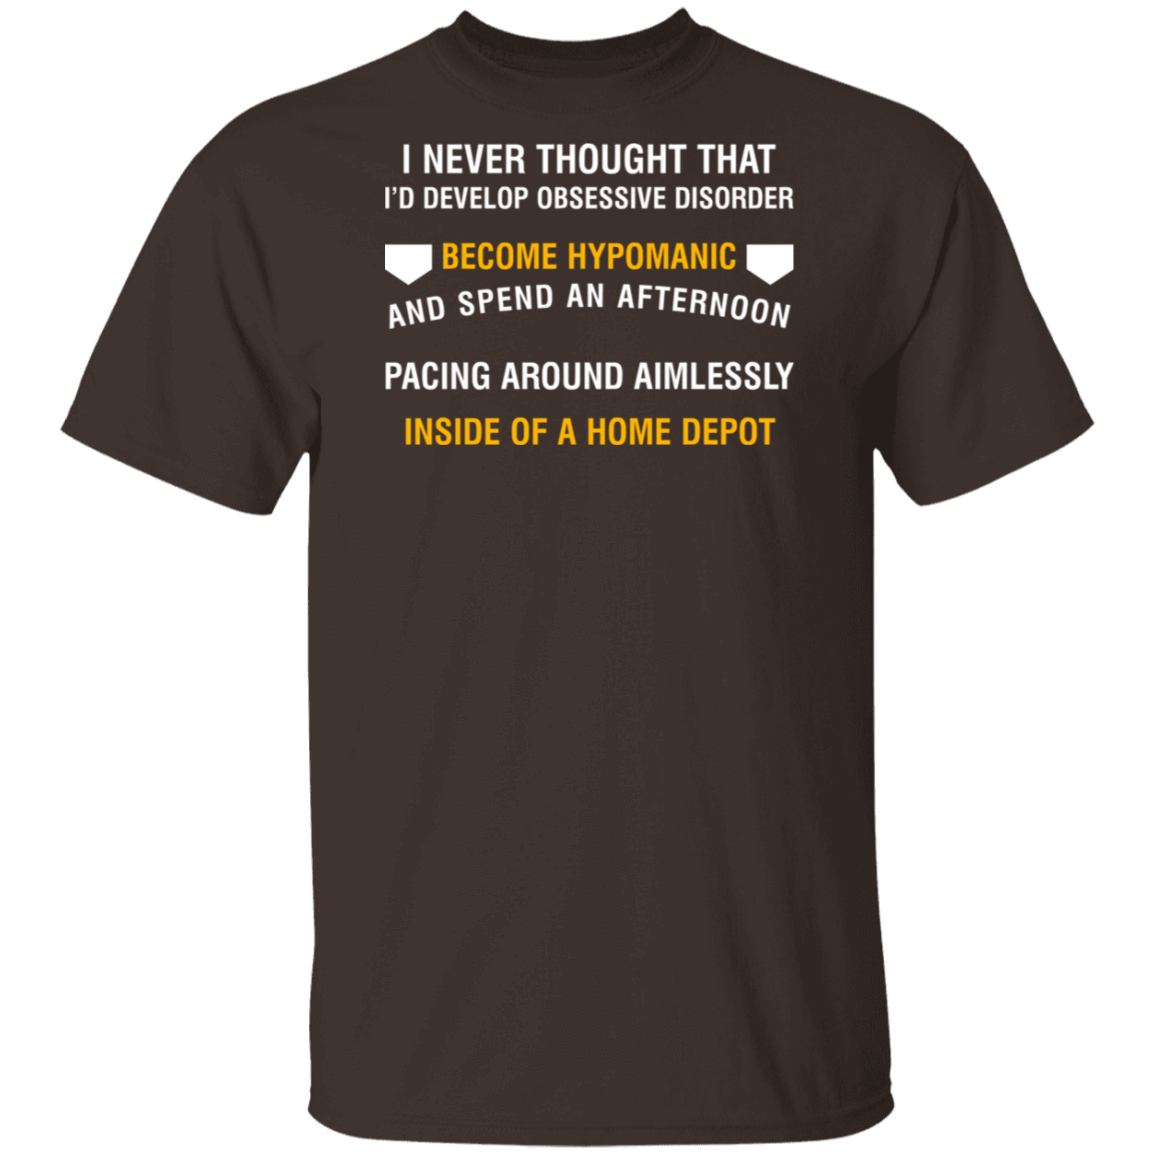 I Never Thought That I'd Develop Obsessive Disorder Become Hypomanic T-Shirts, Hoodies, Tank 1049-9956-80563064-48152 - Tee Ript